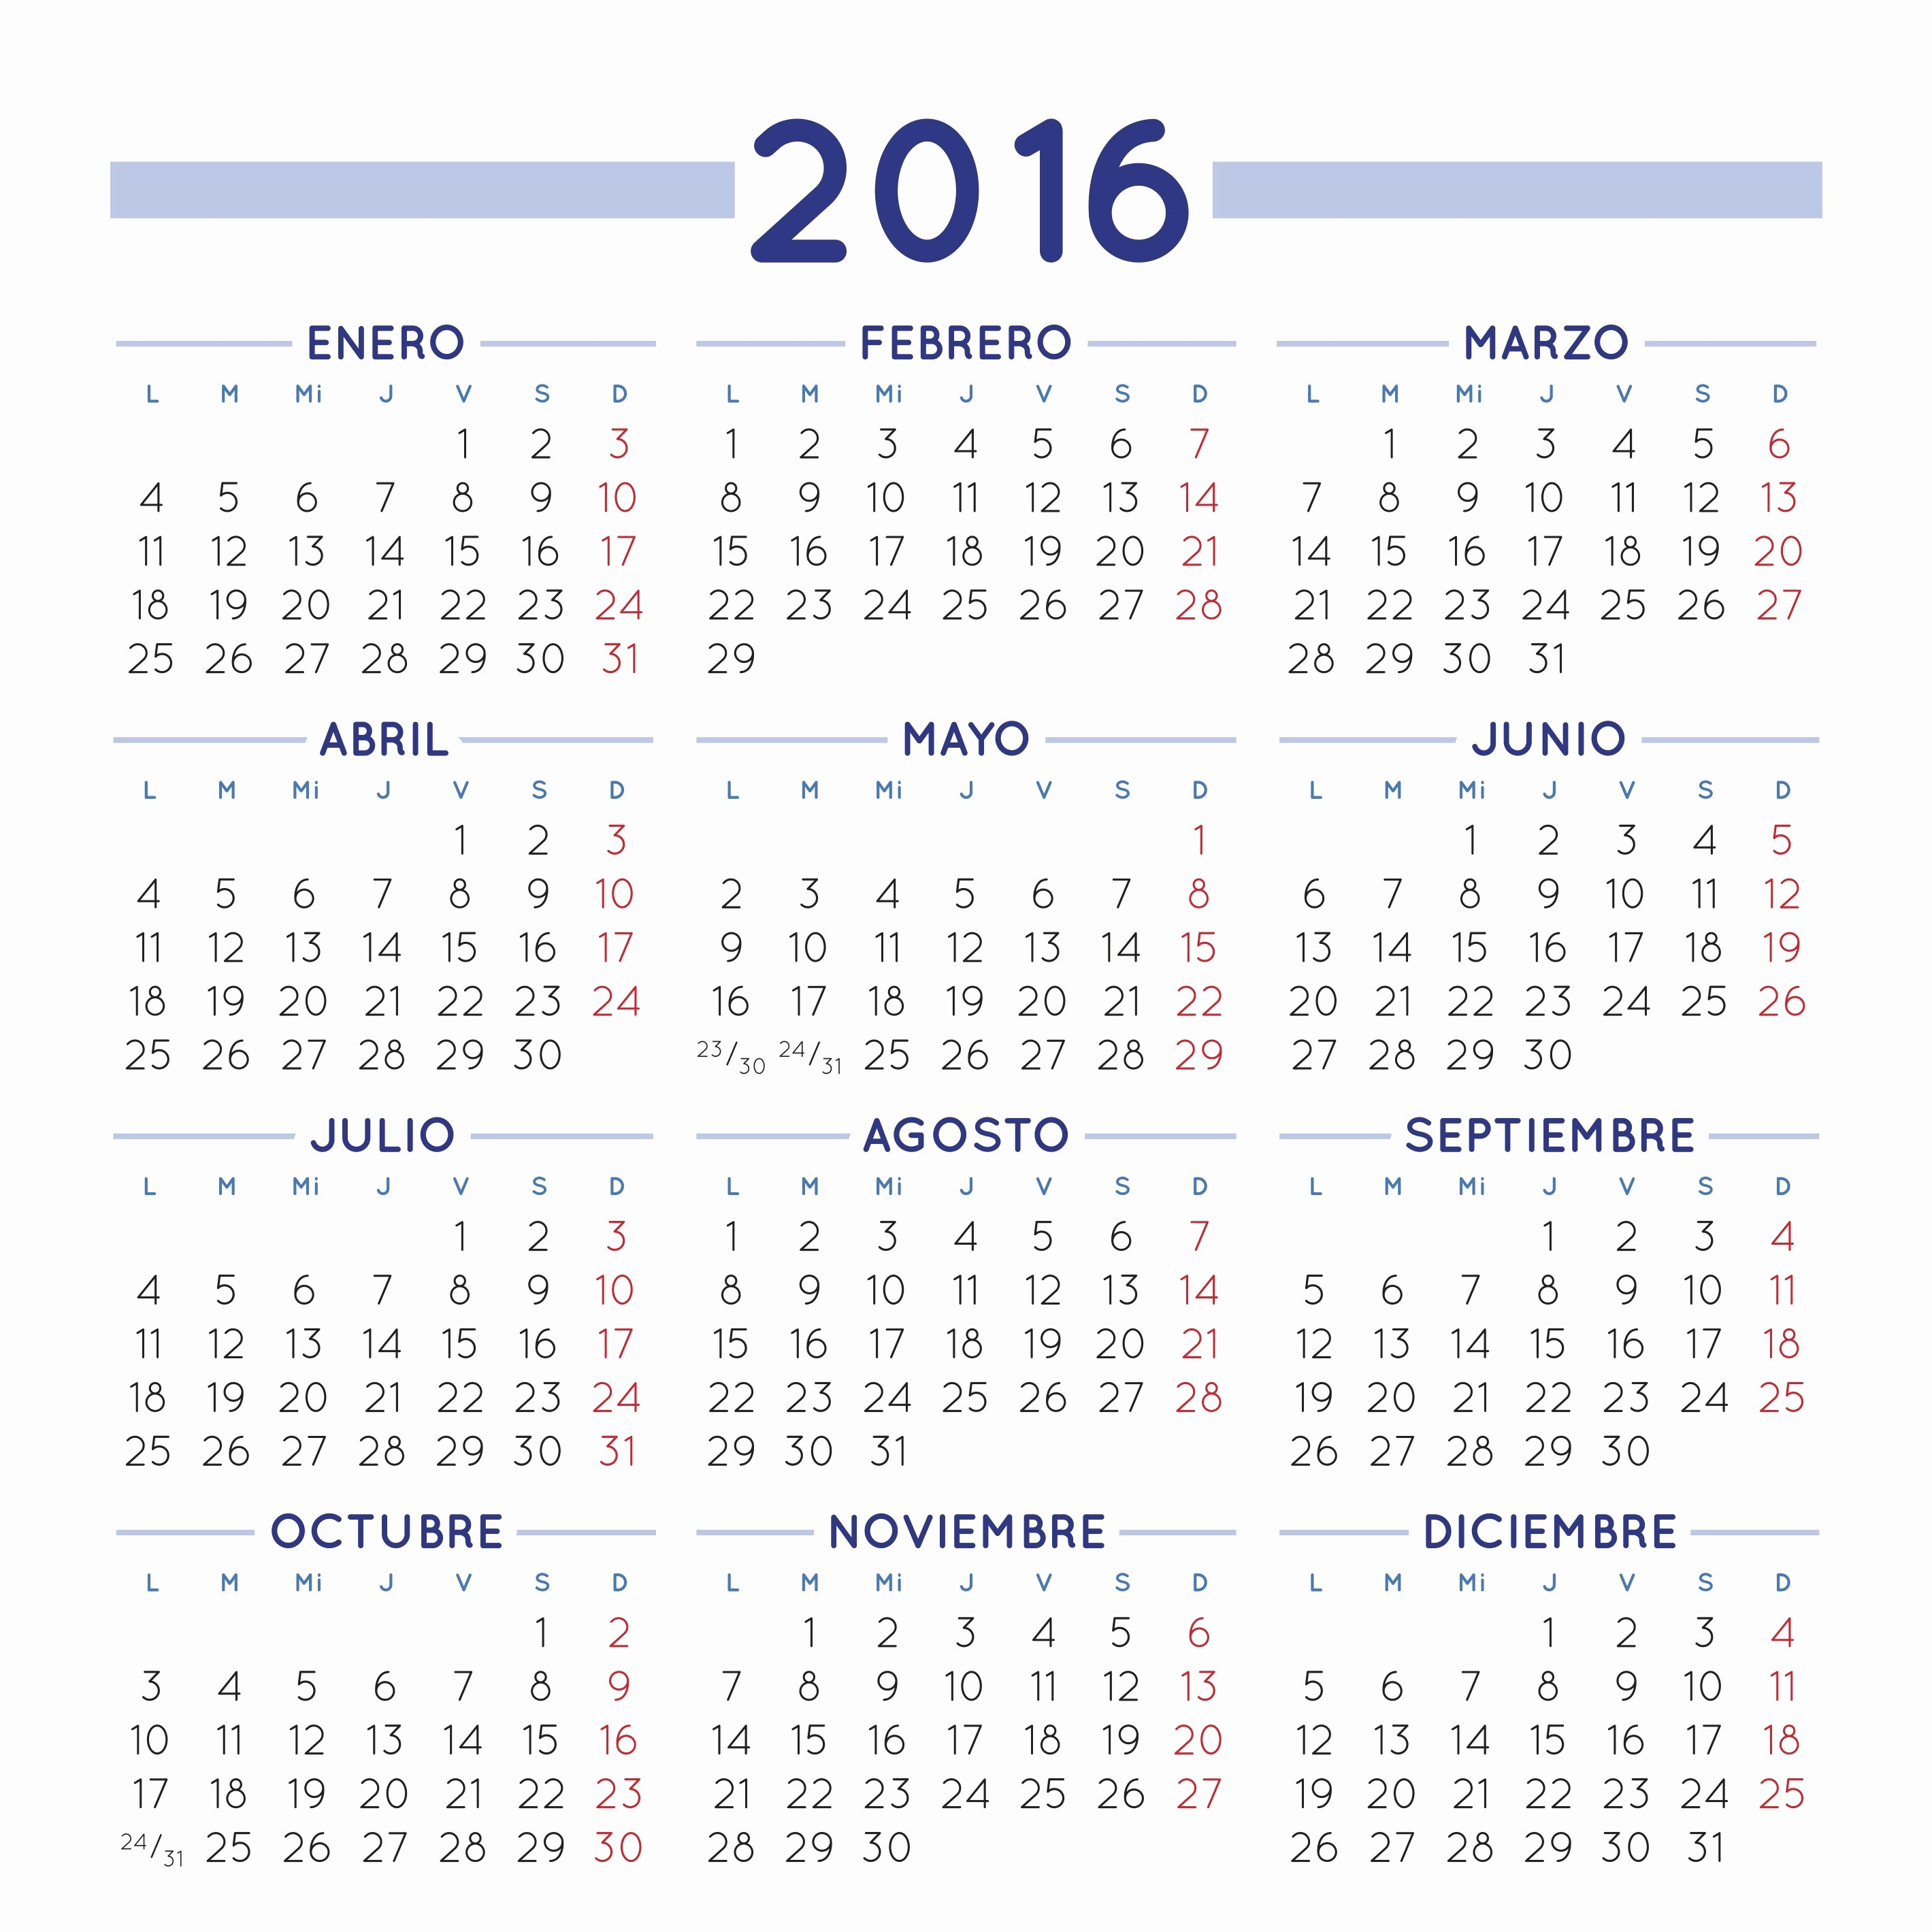 Calendario Juliano 2017 Para Imprimir Lovely Calendario 2016 Imagenes Educativas